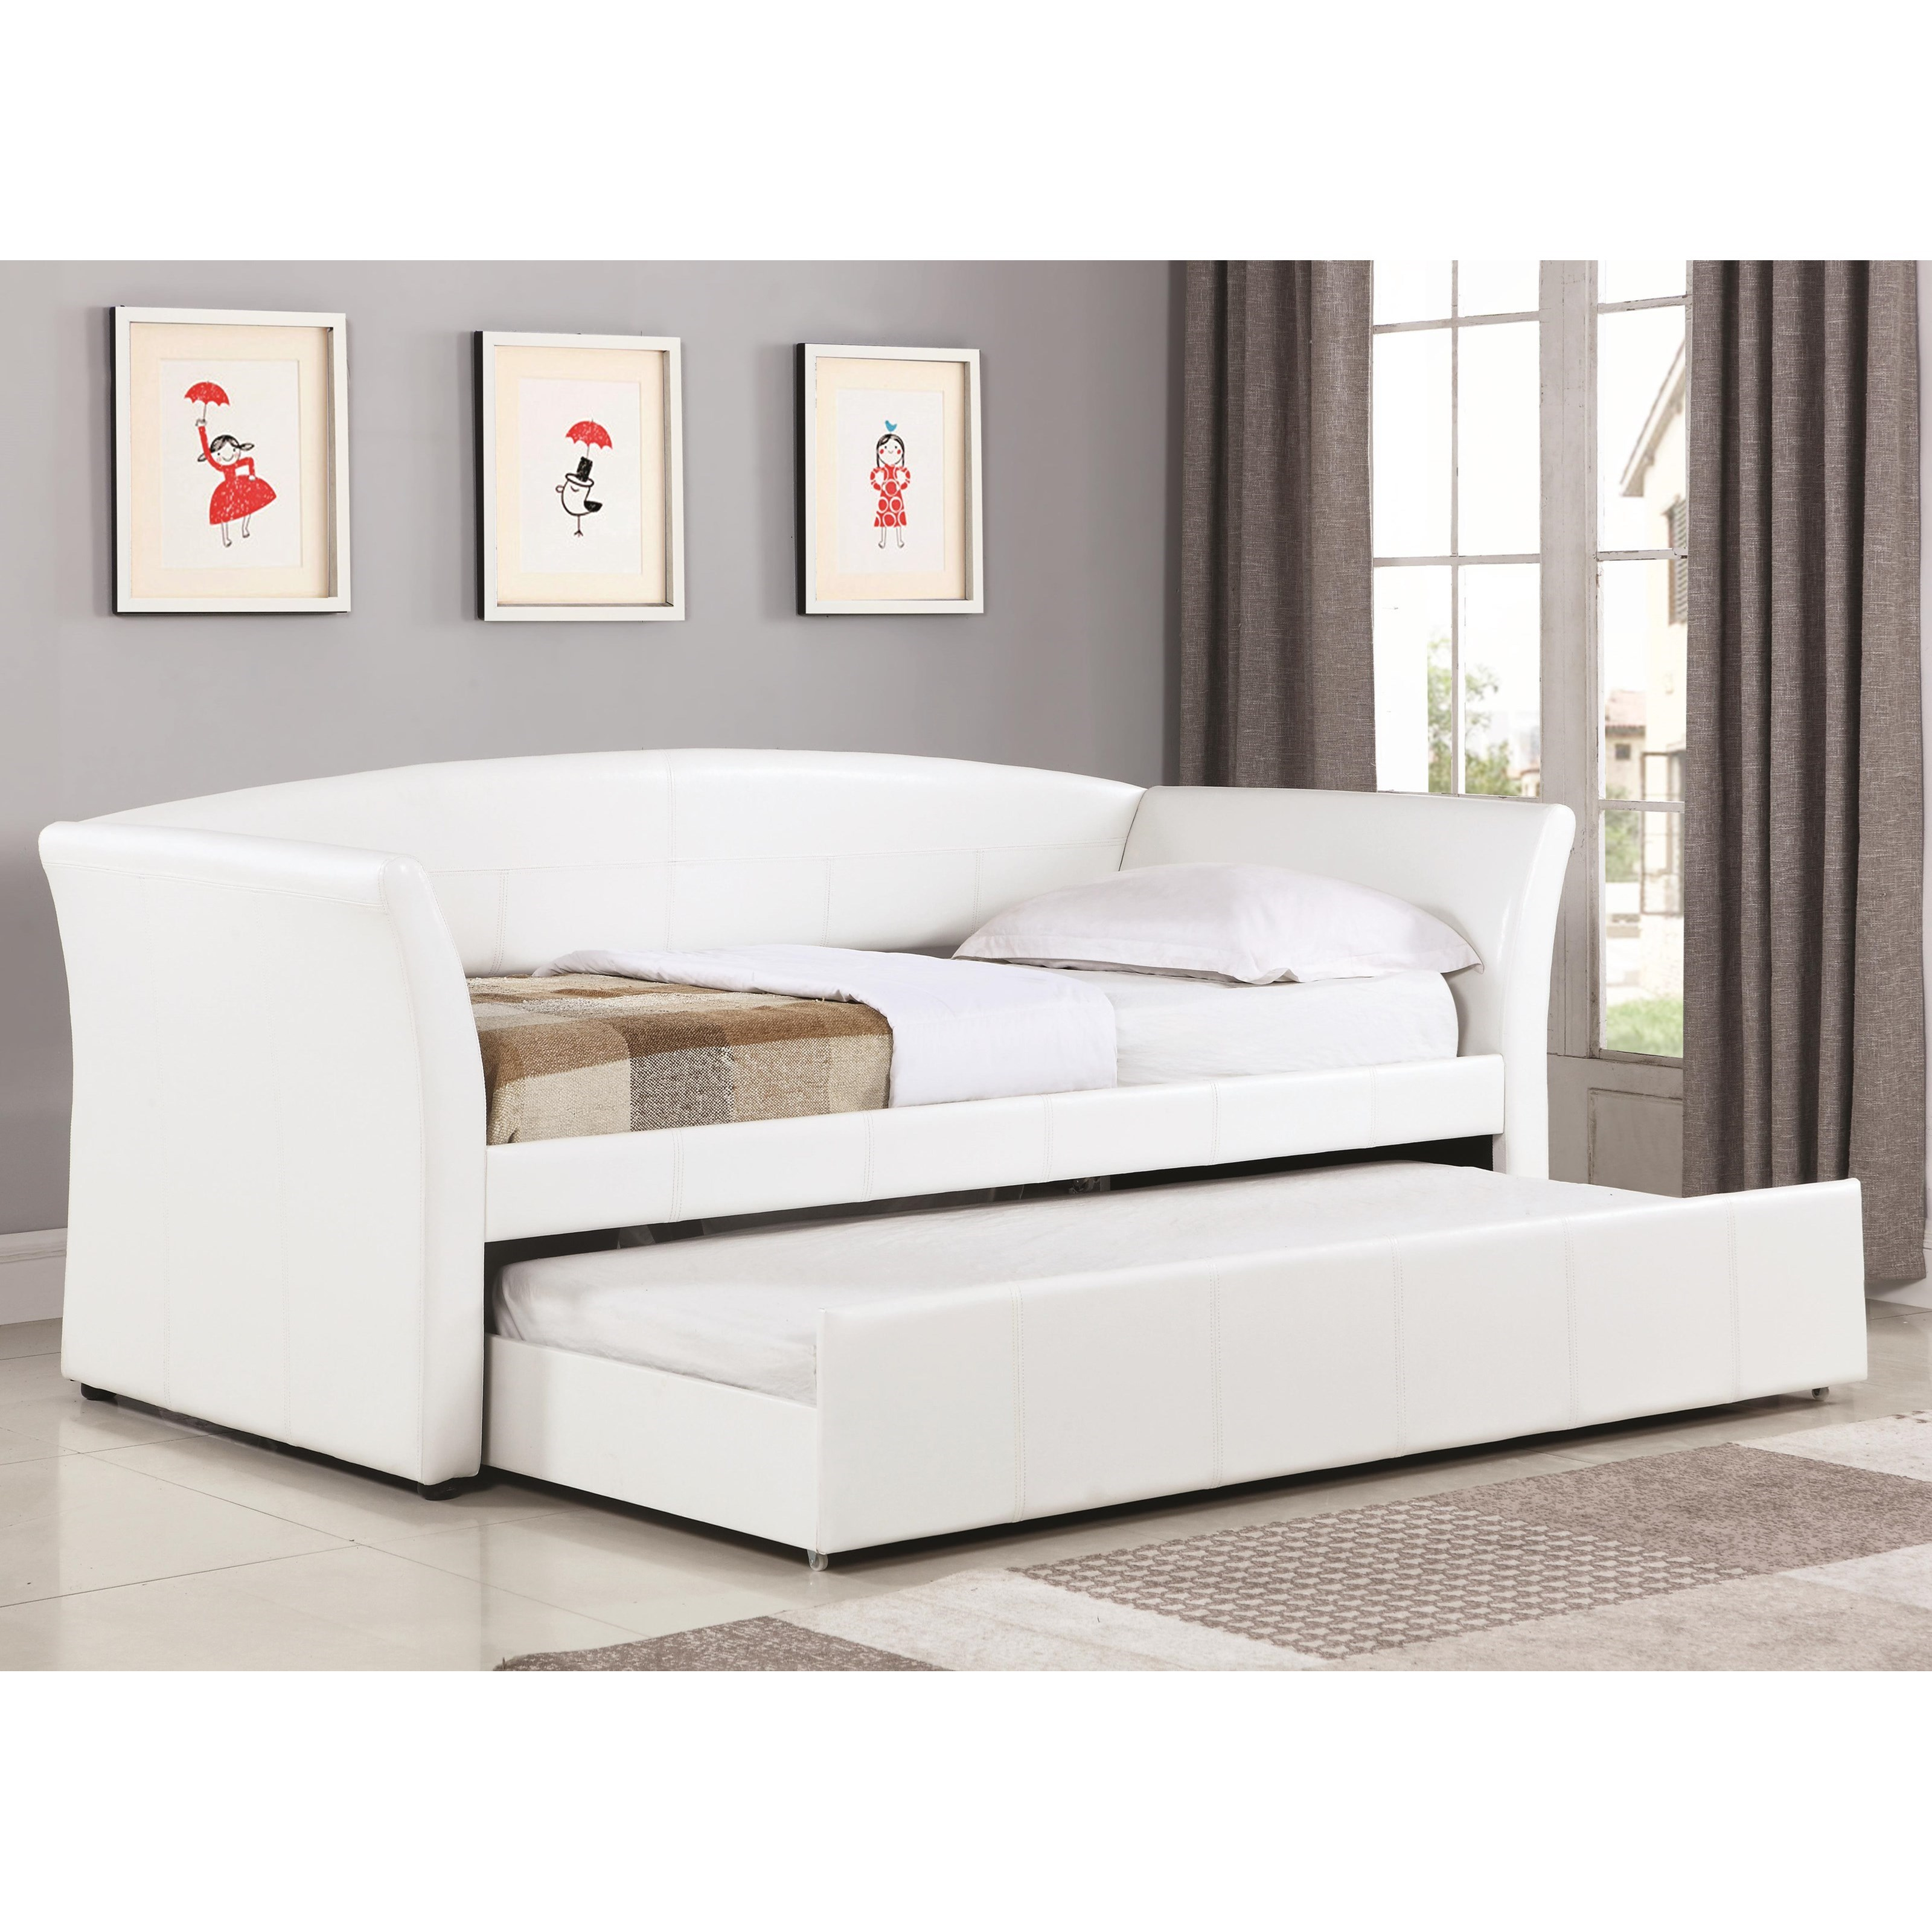 Coaster Daybeds by Coaster Daybed - Item Number: 300633